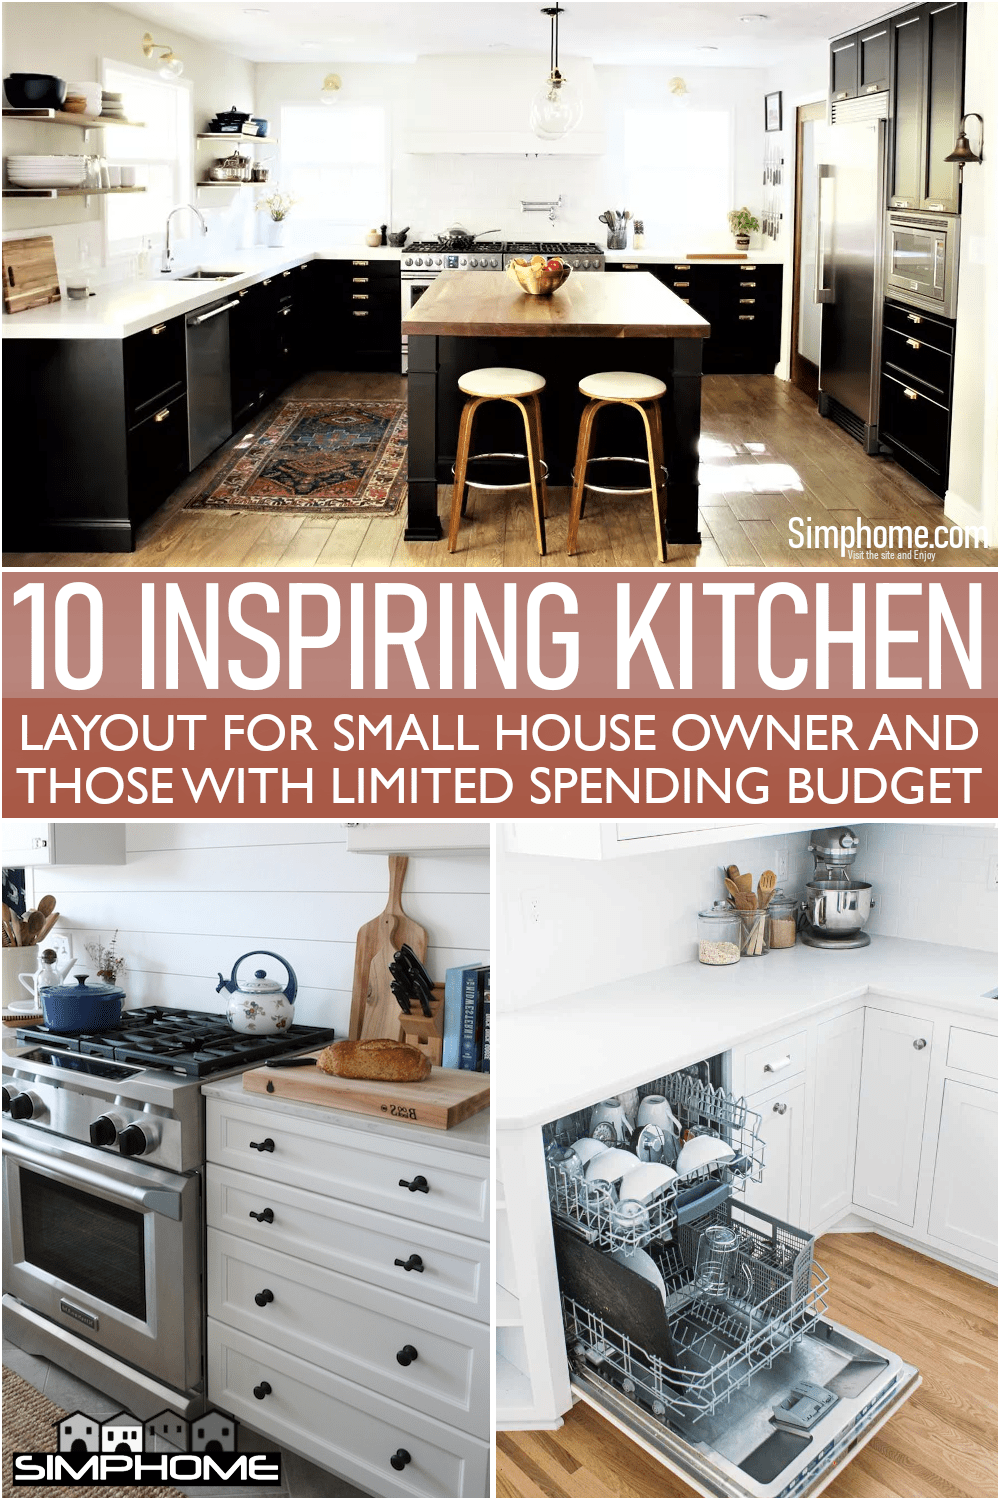 This is ready to copy 10 Kitchen Layouts for Small House Owners